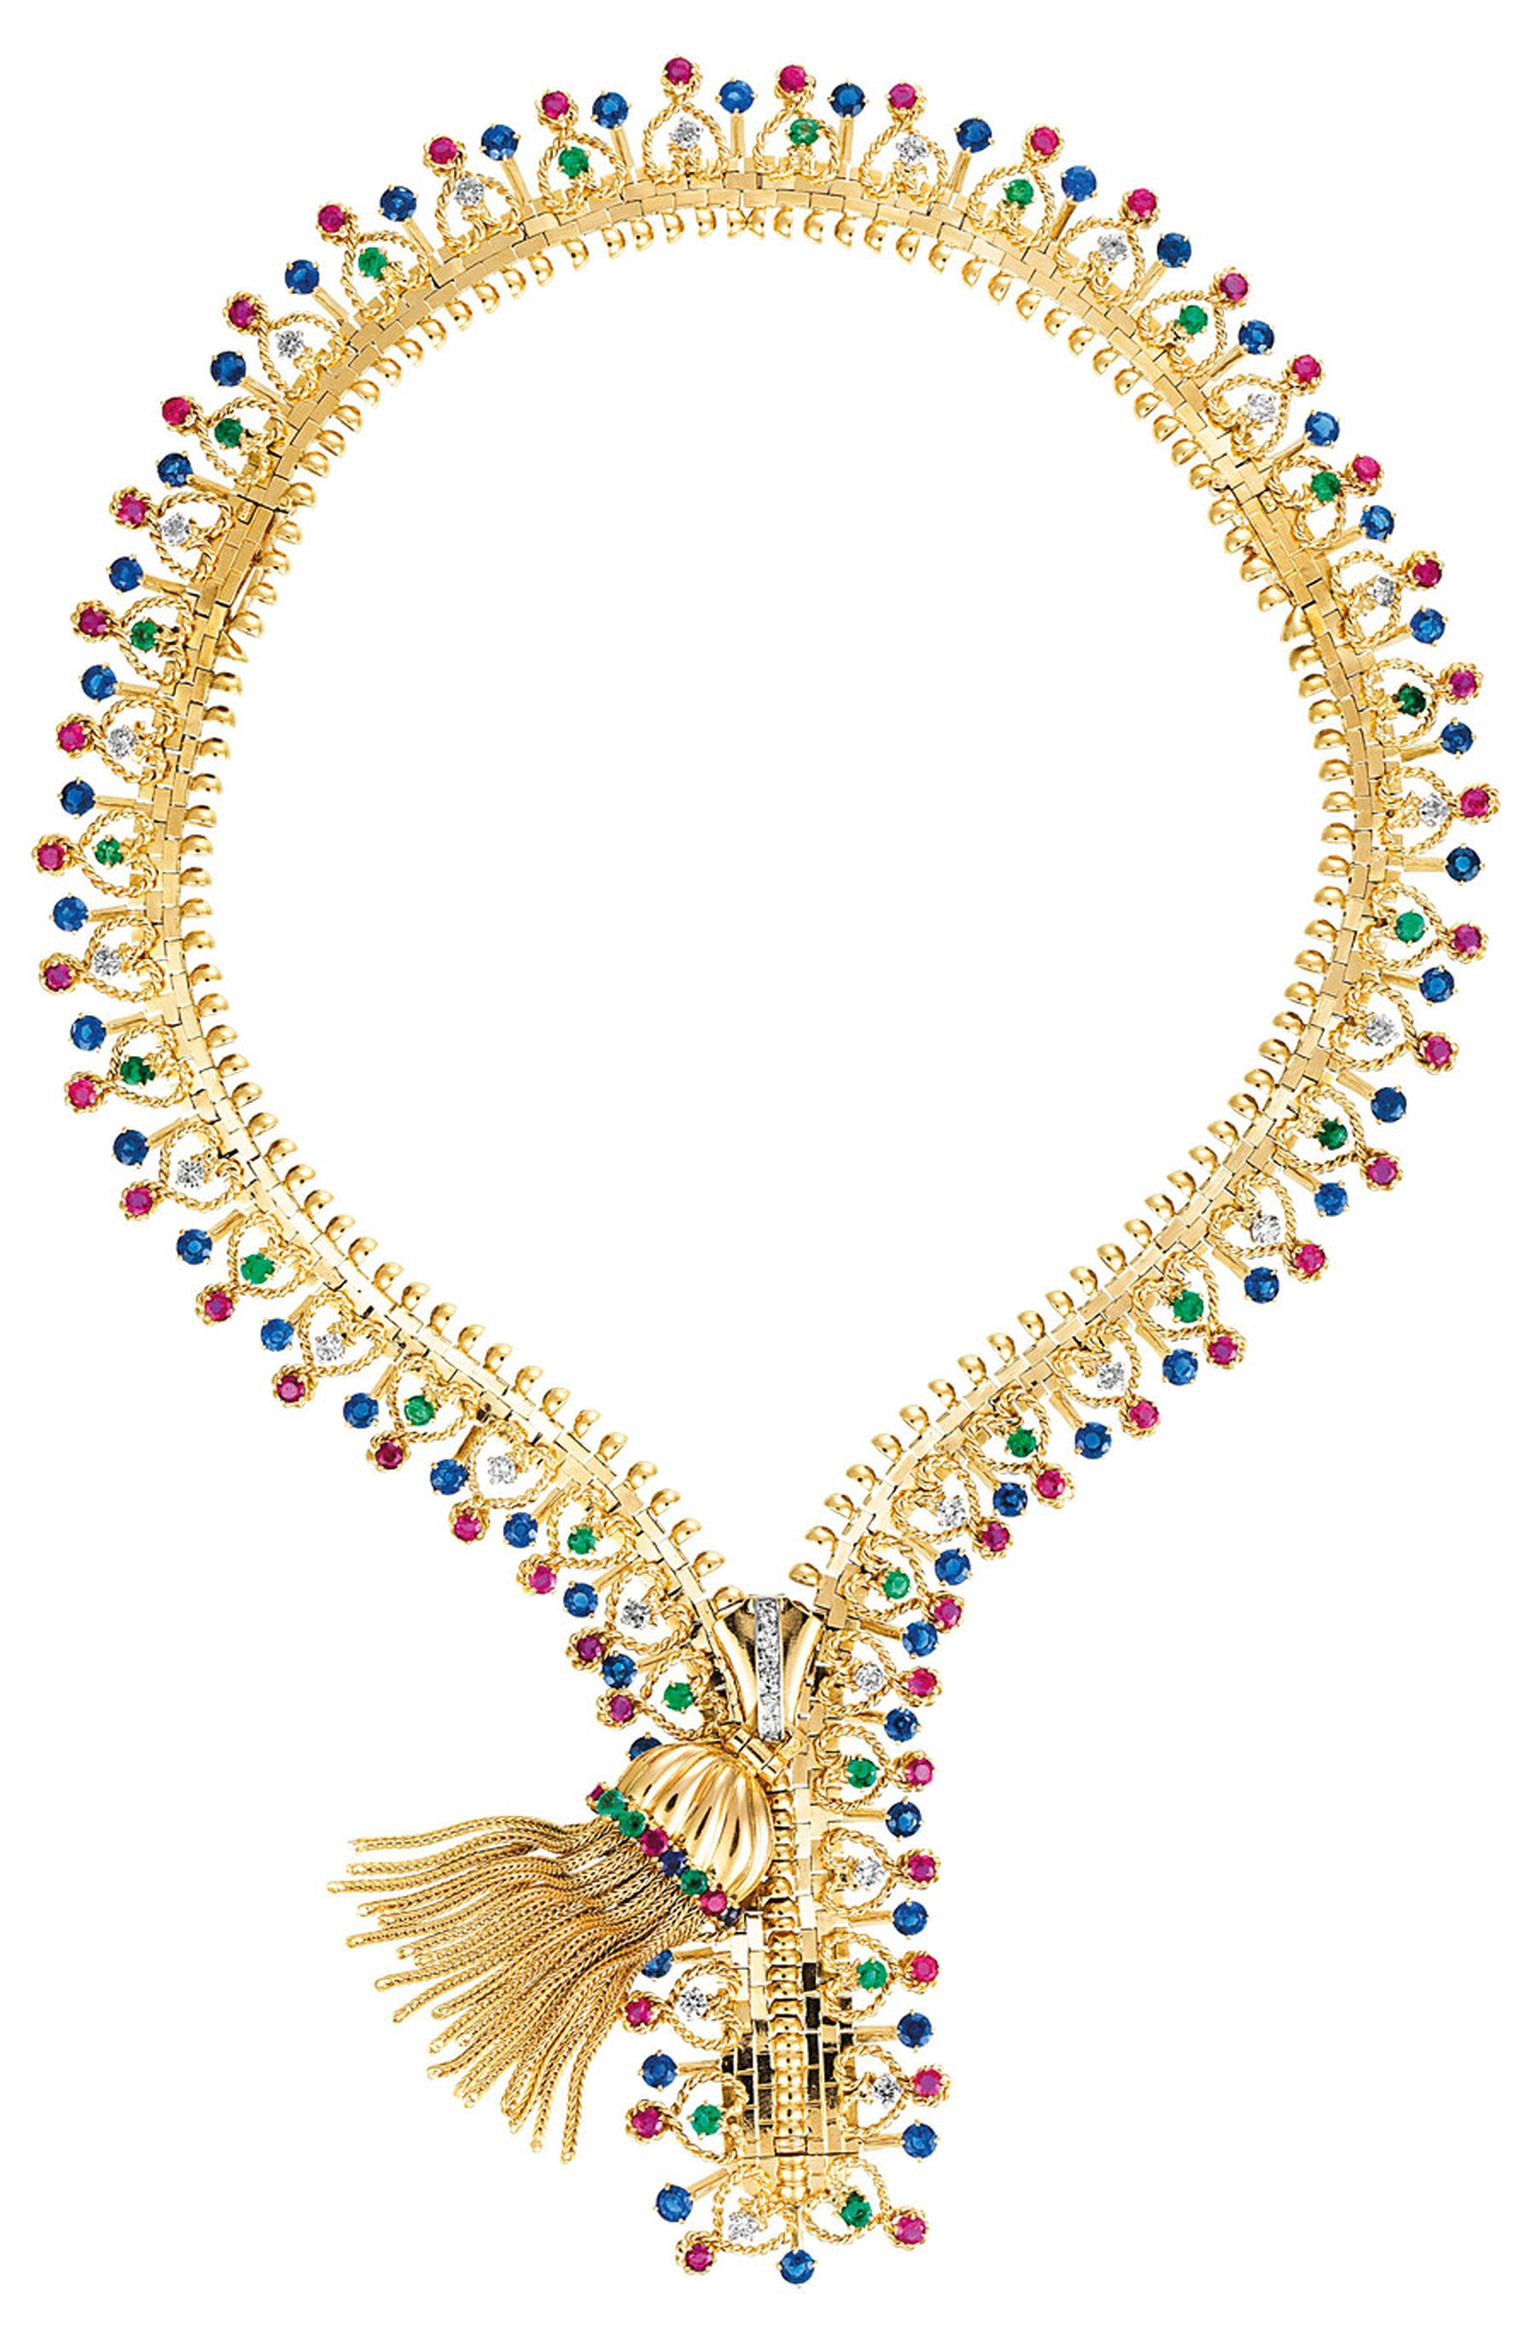 Van-Cleef-Arpels-Zip-necklace-1951-Van-Cleef-Arpels-Collection